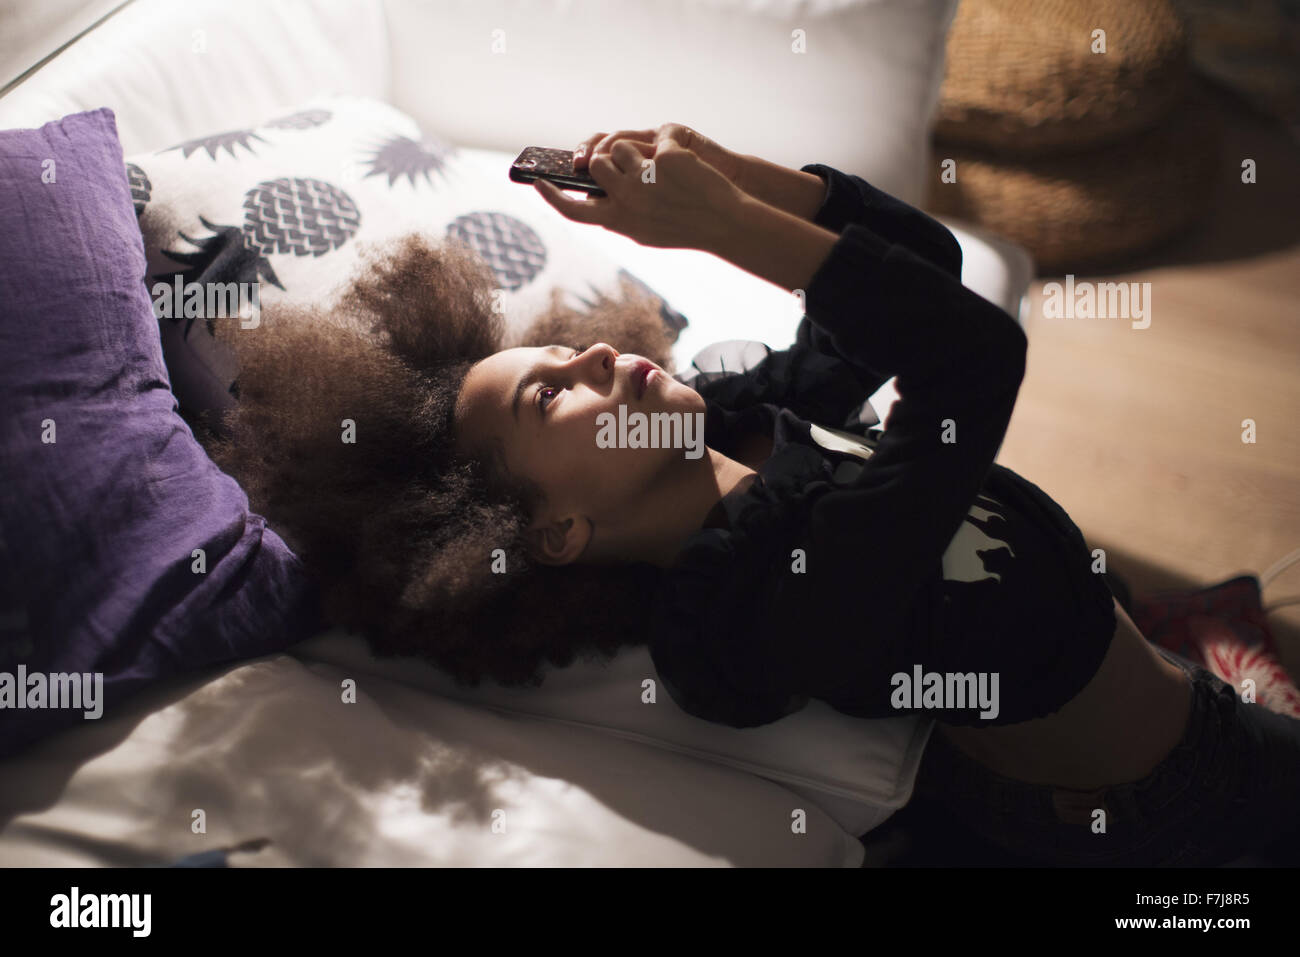 Girl reclining against sofa, engrossed in smartphone - Stock Image